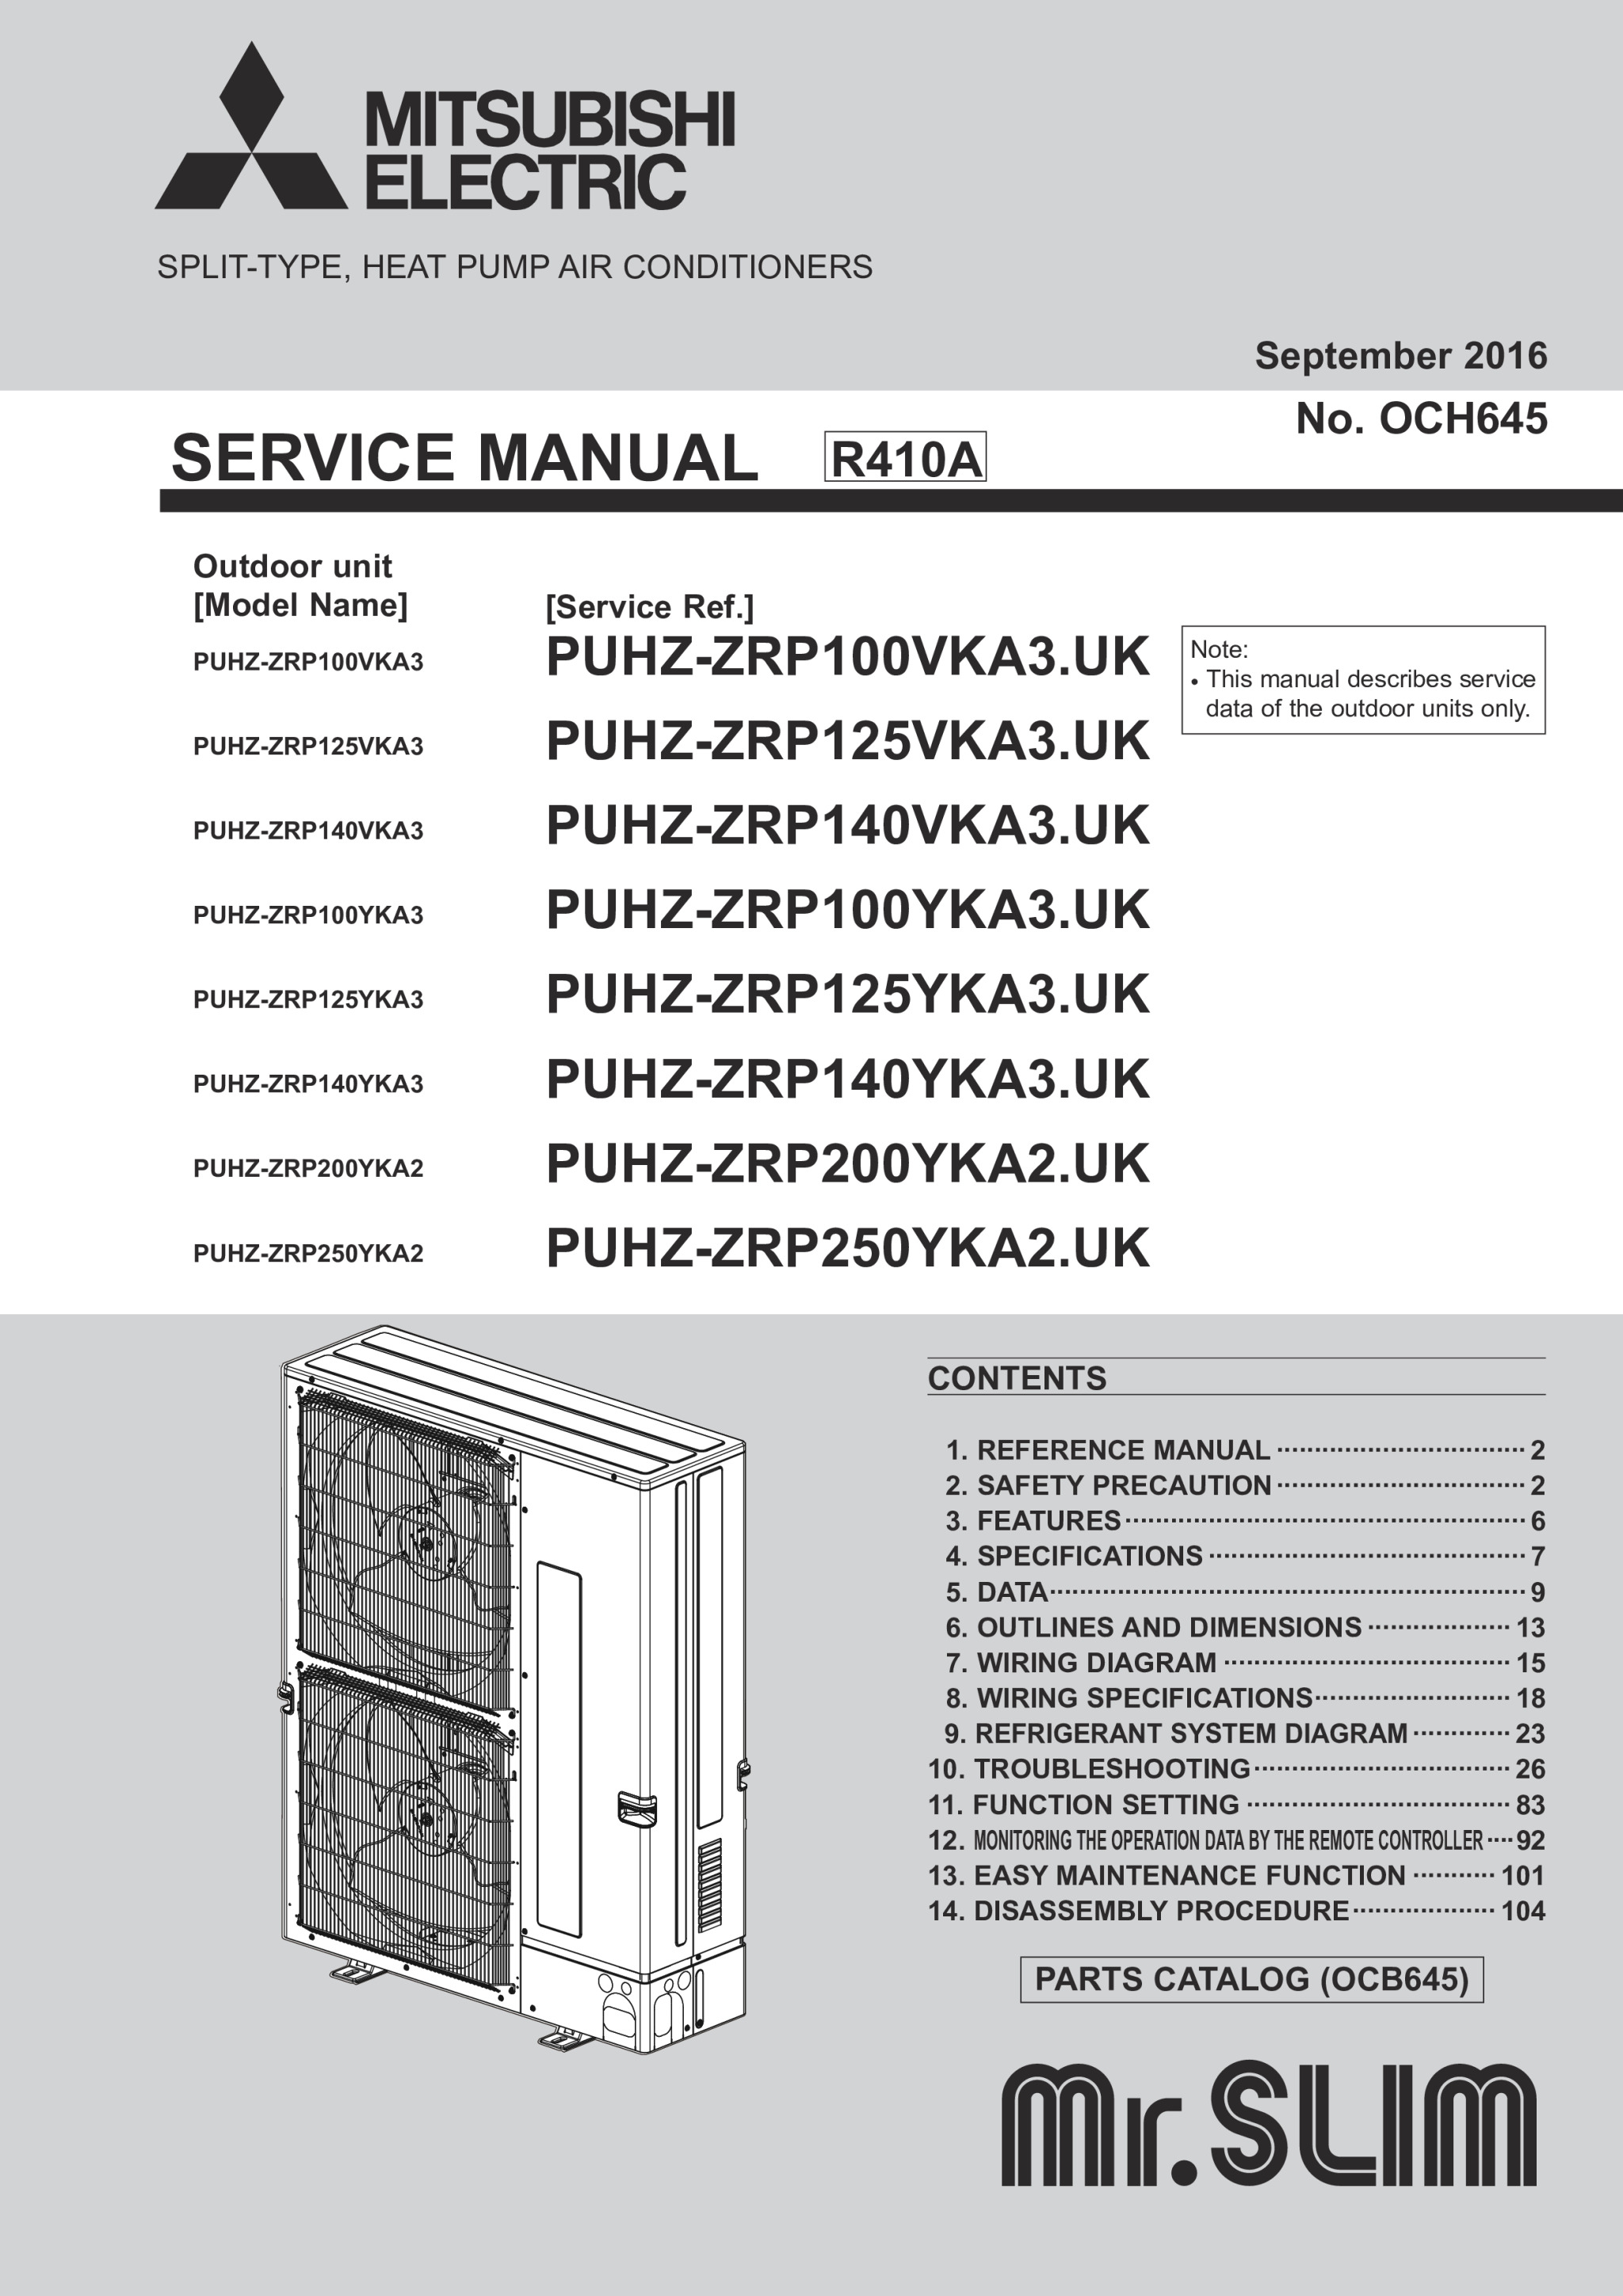 0_main puhz zrp100 250v yka(3)(2) service manual (och645) mitsubishi mitsubishi mr slim wiring diagram at n-0.co